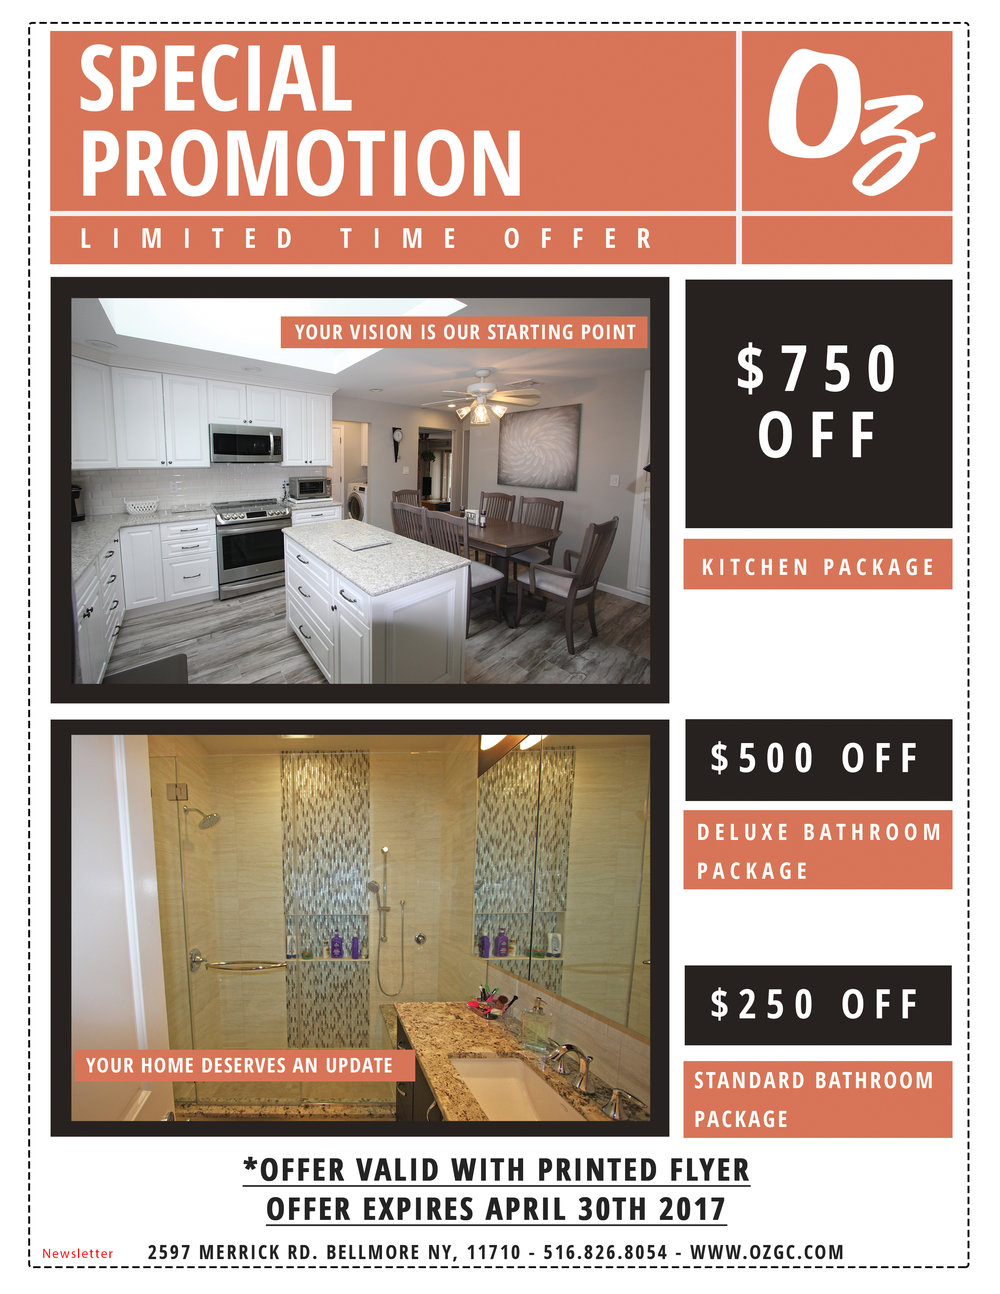 Special 2017 Promotion - Newsletter